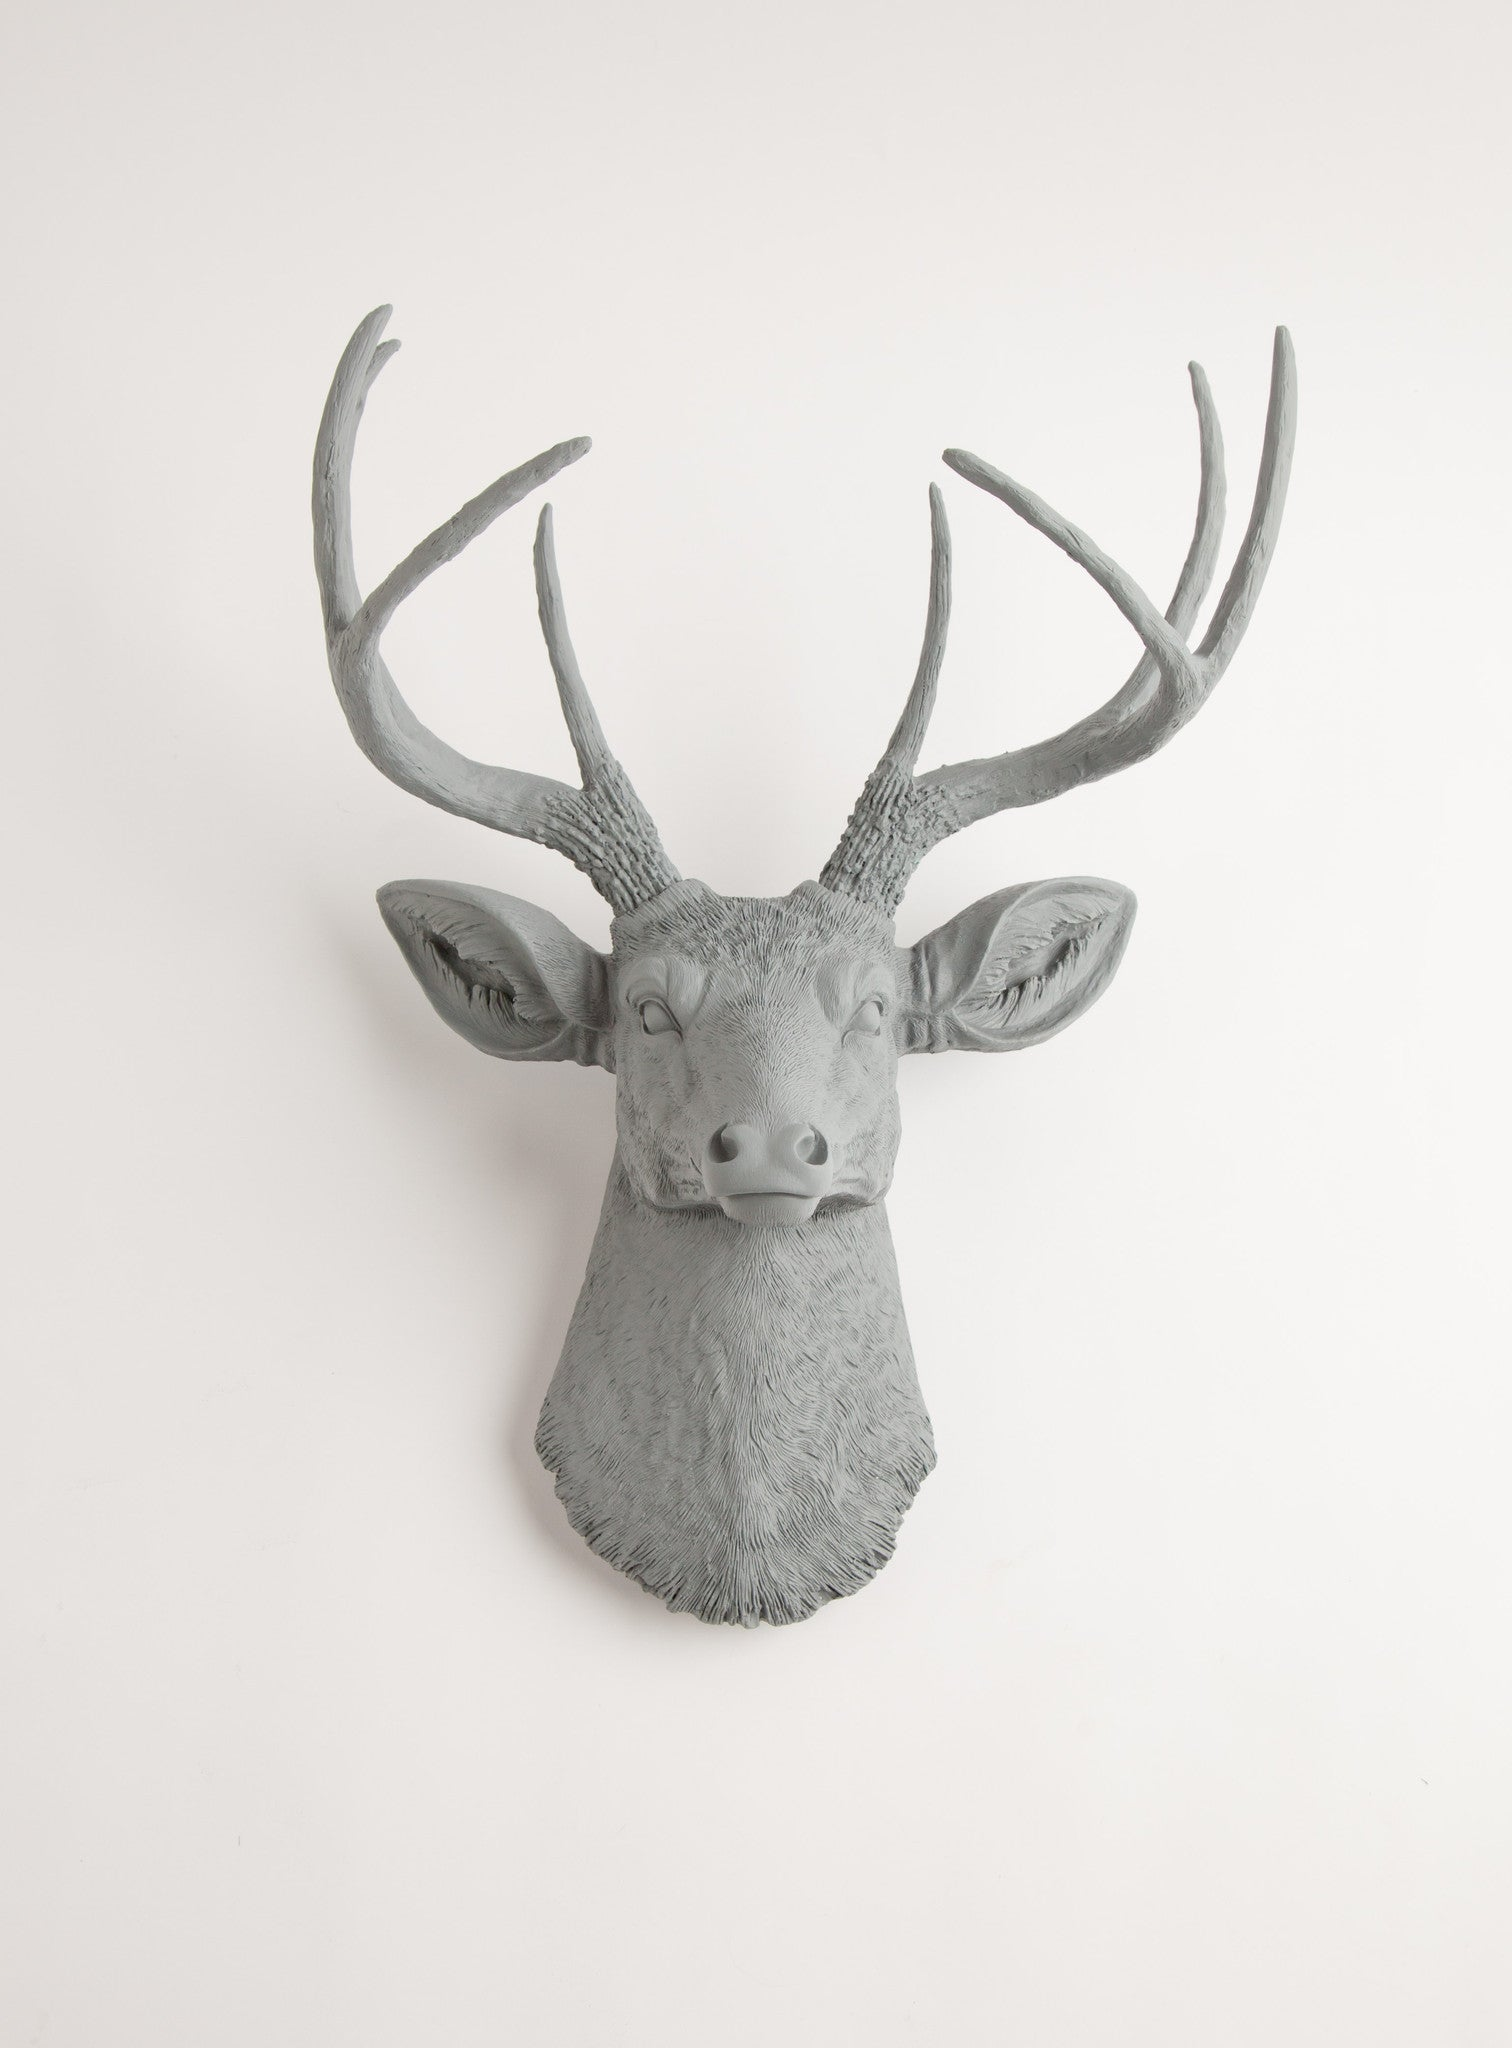 carved head idea decorations stag deer design and decor wall